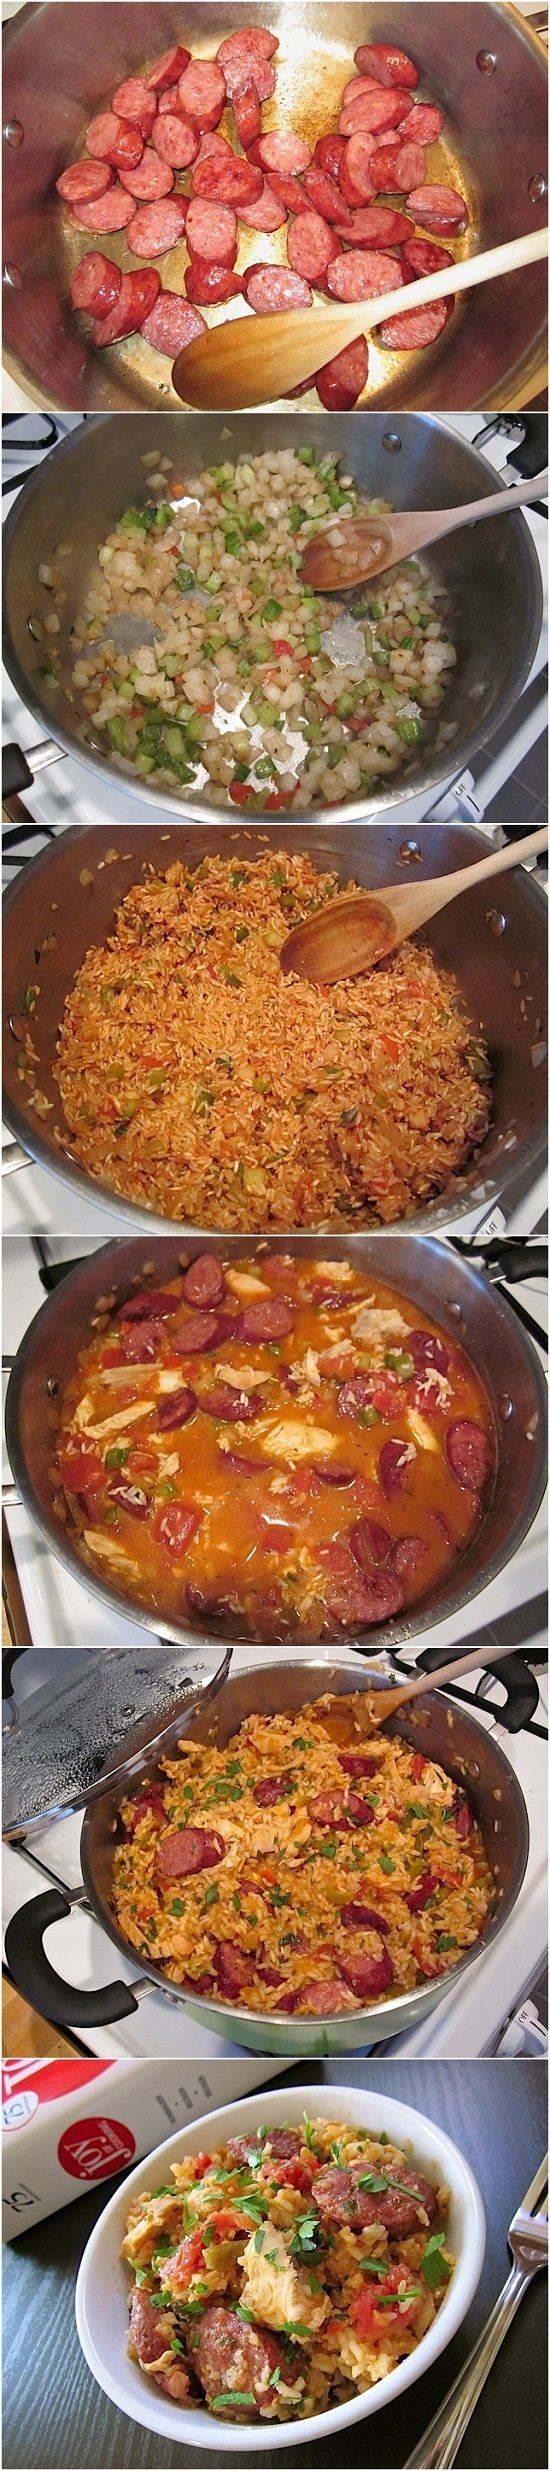 WOW is this ever good! The best Jambalaya Rice Bowl recipe hands down. Will ex out the shrimp and sub chicken